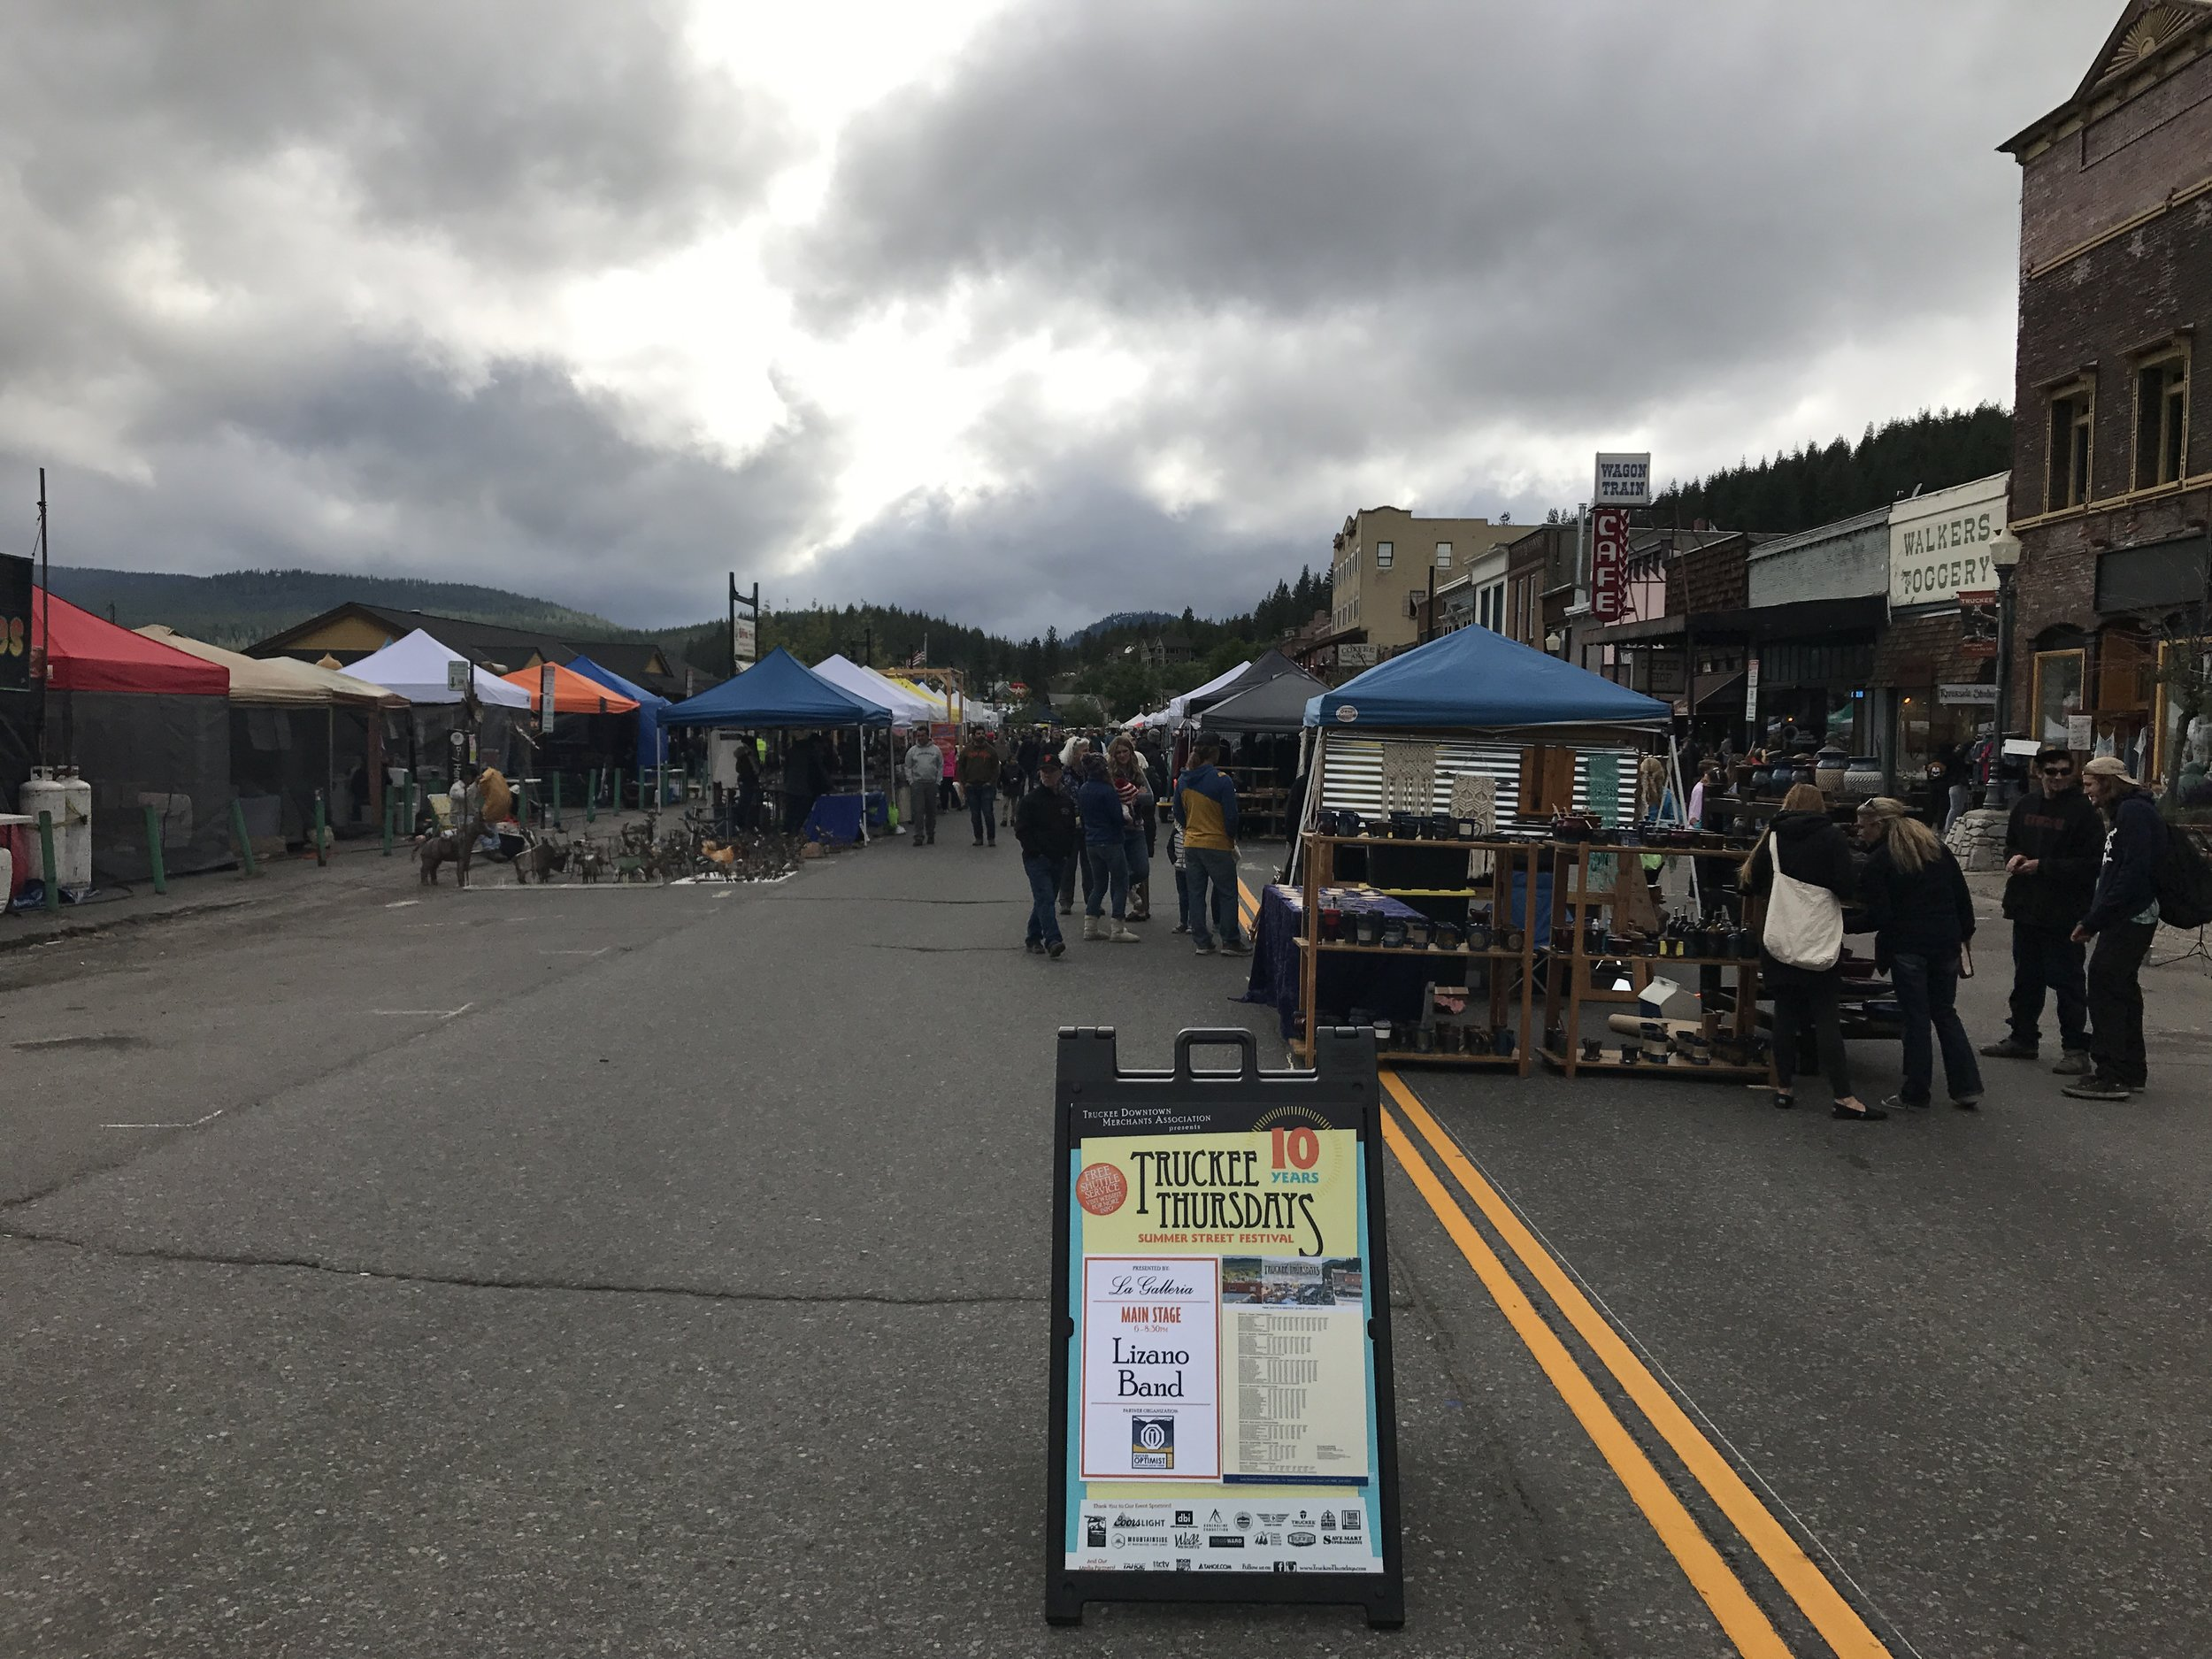 The crowd was still strong at the first Truckee Thursday of the year despite the weather!